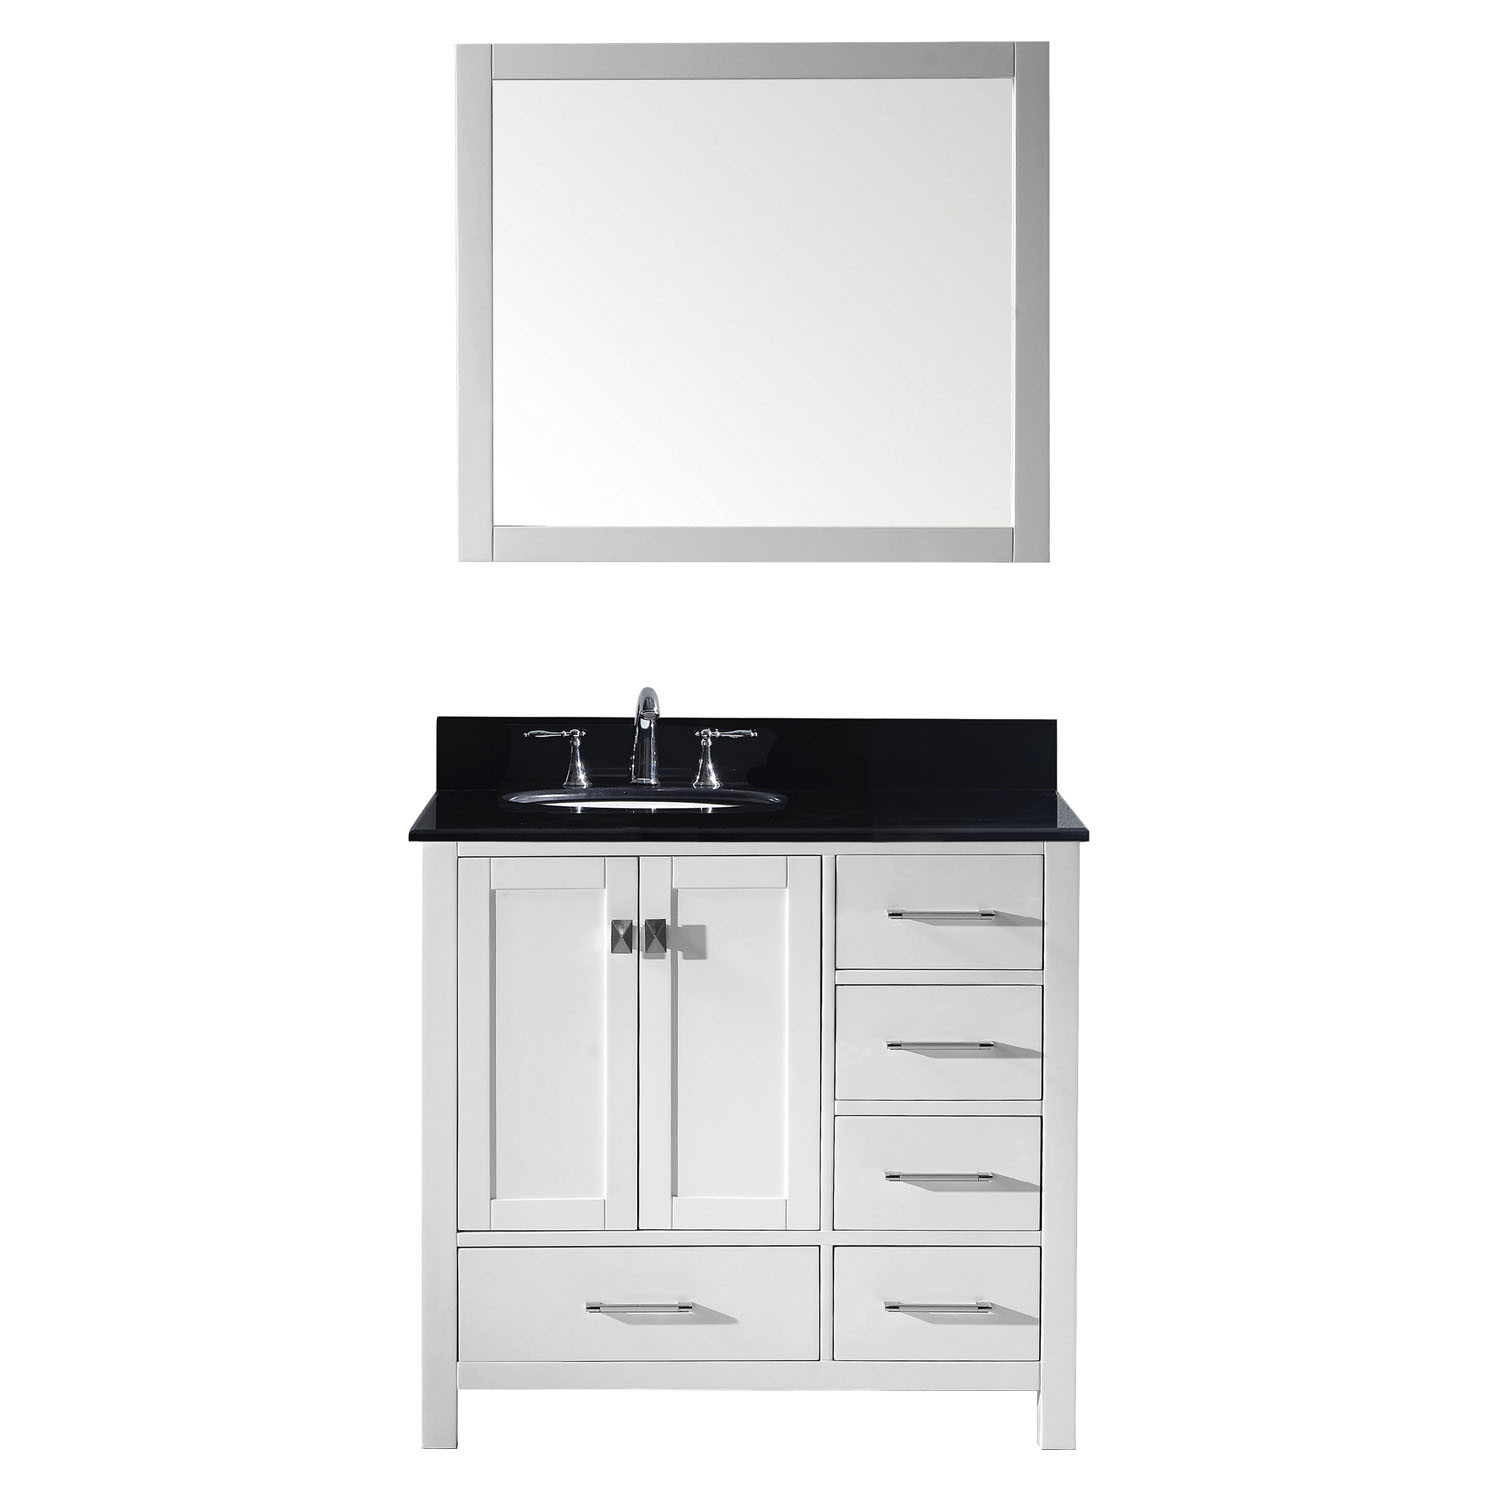 Virtu GS-50036-BGRO-WH-002 Caroline Avenue 36 Inch Single Bathroom Vanity Set In White